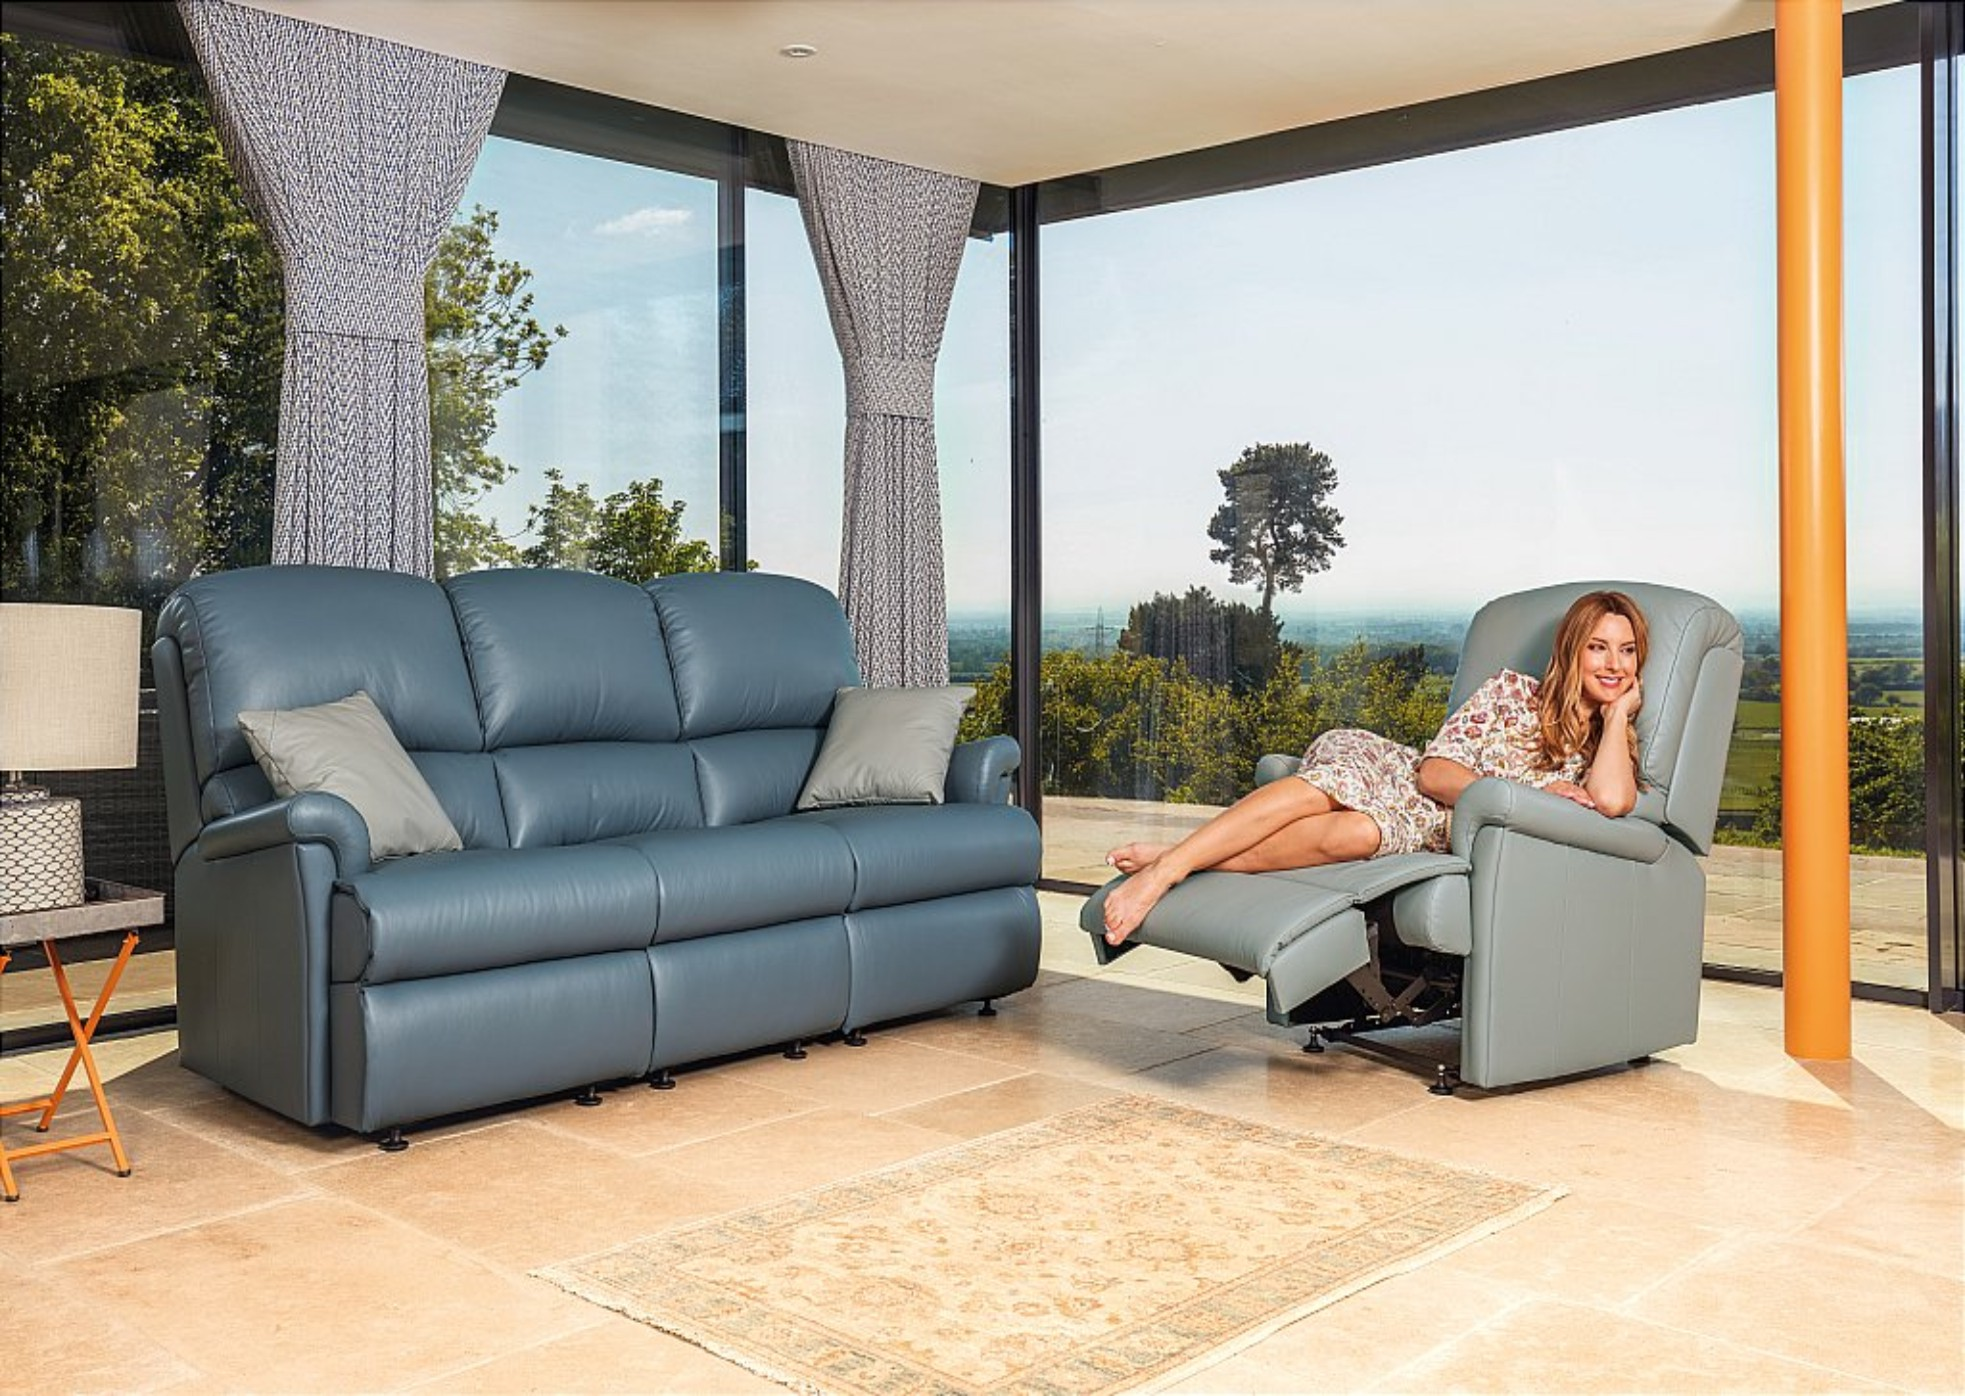 Pleasing Nevada Royale Lift And Rise Recliner Chair Fabric Or Leather Ocoug Best Dining Table And Chair Ideas Images Ocougorg